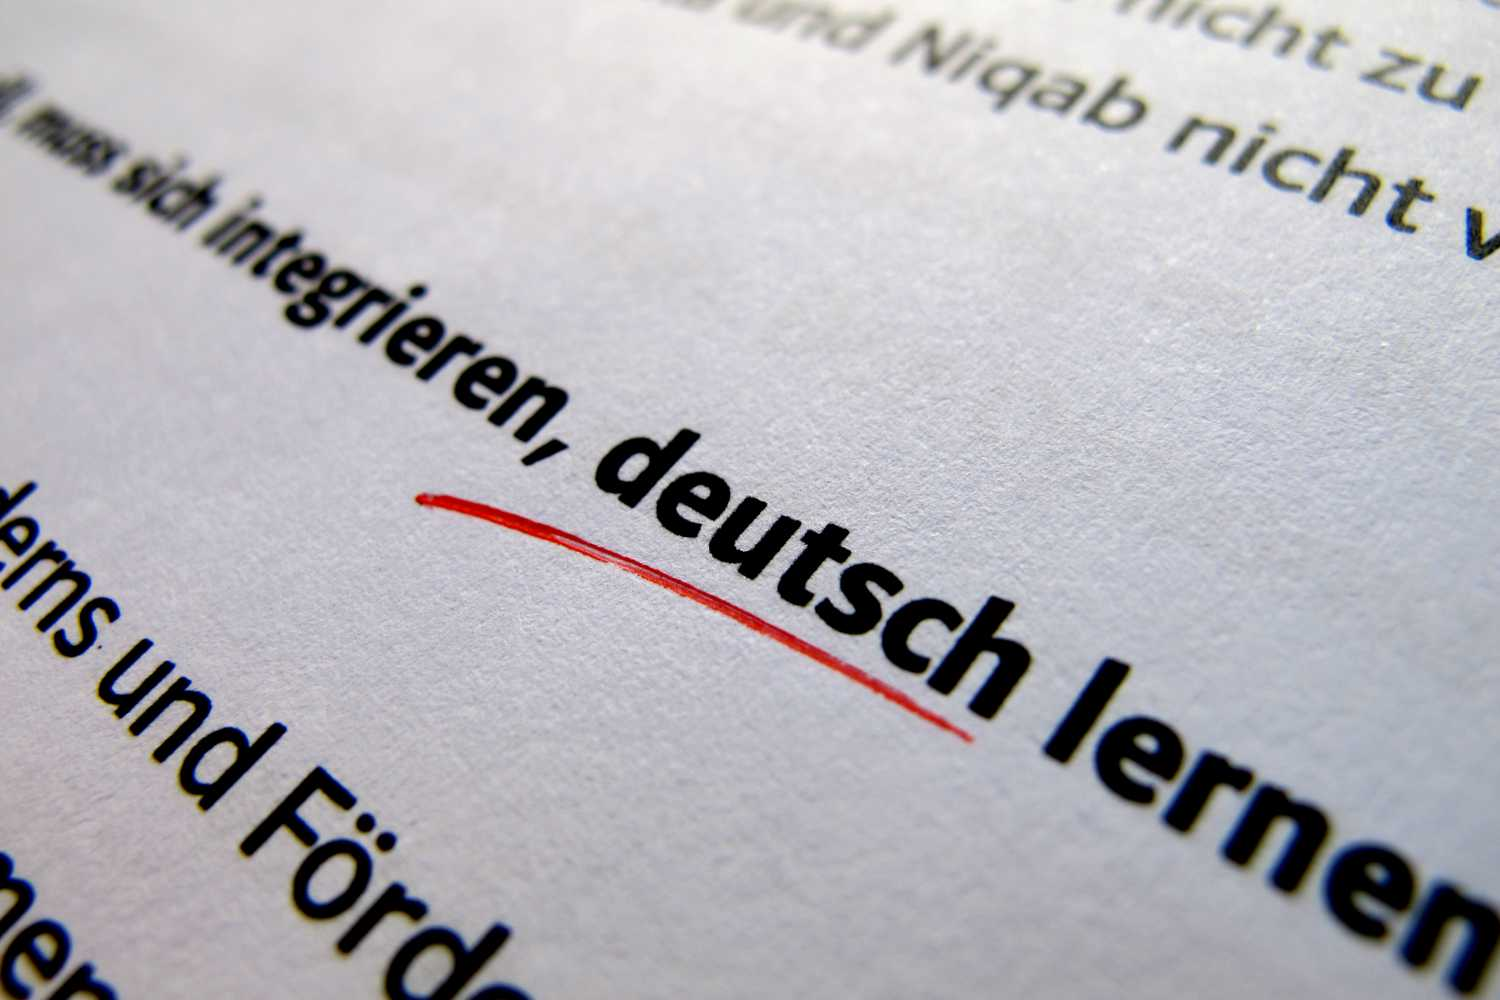 Austria: Just how good does your German have to be to gain residency and citizenship?